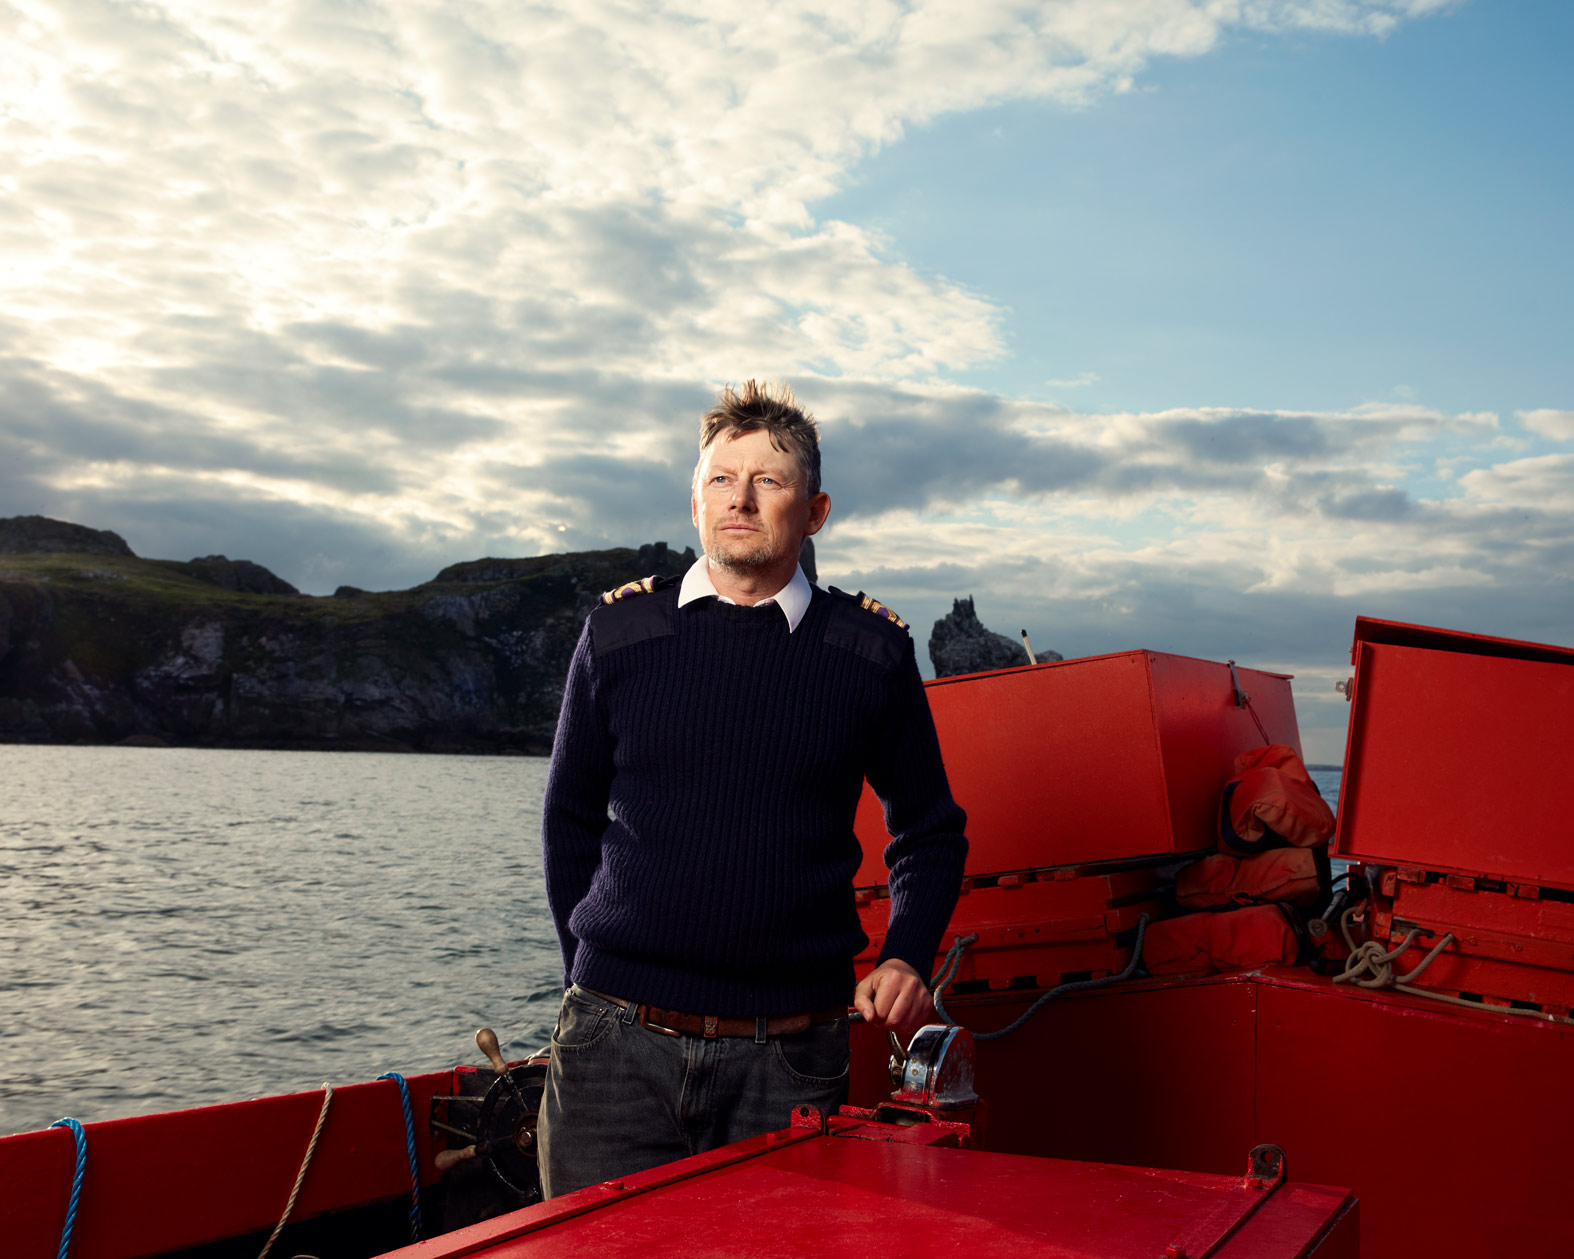 location portrait photography: a  fisherman at controls of  boat